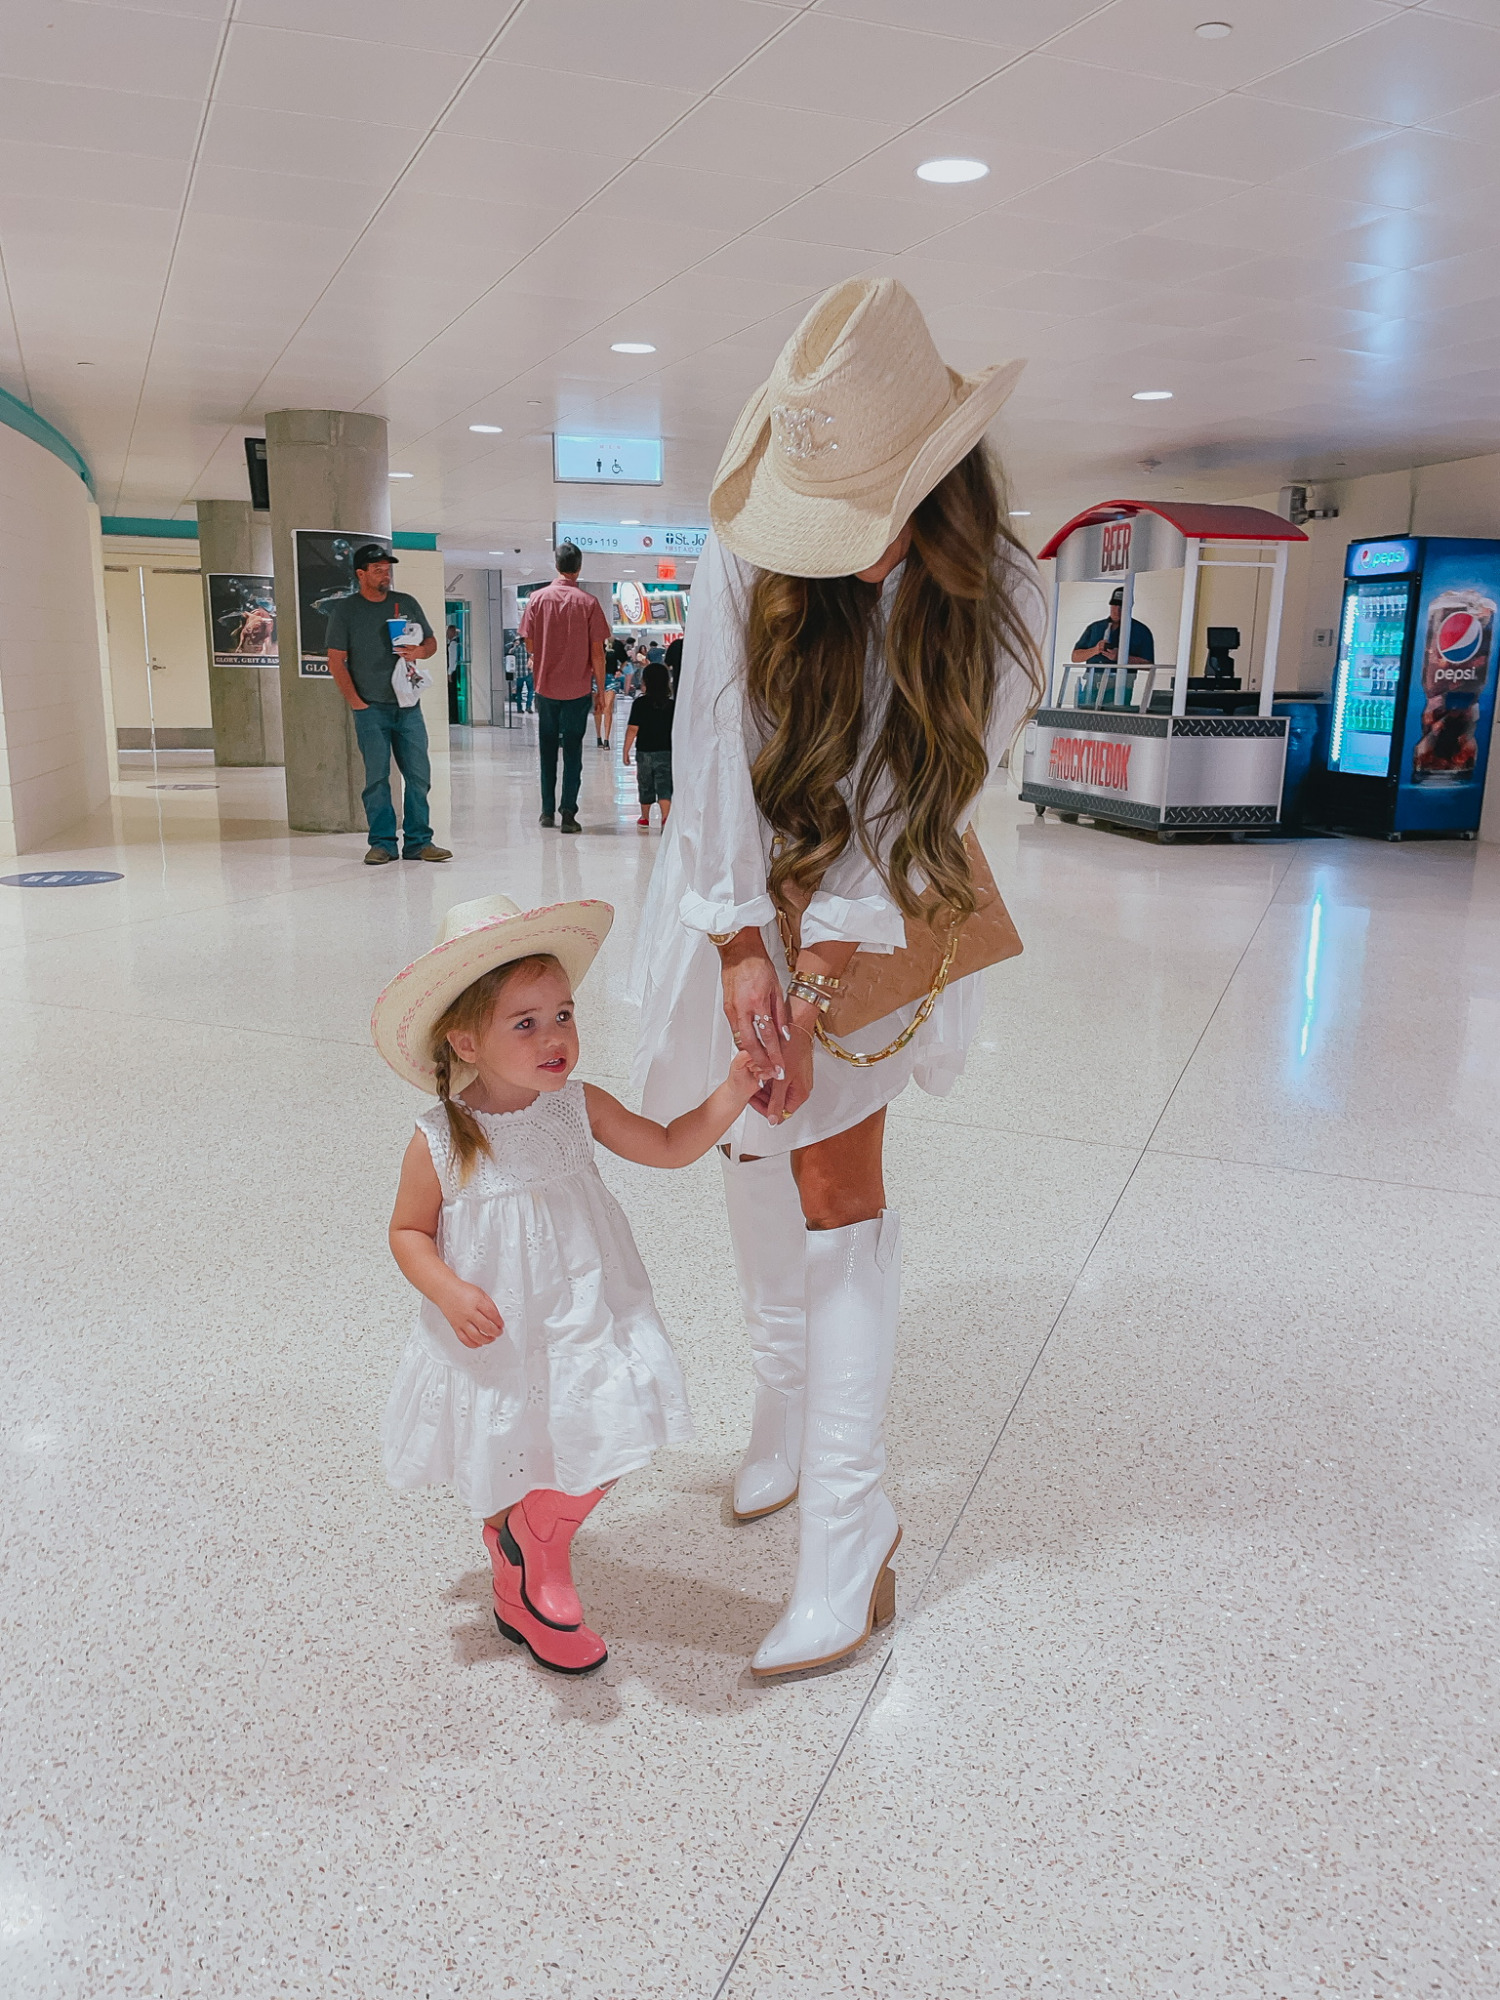 Emily Ann Gemma, Sophia Gemma, Cowgirl Boots, What To Wear To The Rodeo, Western Outfit Ideas, Amazon Cowgirl Boots, Fendi Cowboy Boot Dupes, Louis Vuitton Handbag, Cowgirl Hat, Chanel Cowboy Hat   Instagram Recap by popular US life and style blog, The Sweetest Thing: image of Emily Gemma and her daughter wearing white dresses, tan straw cowboy hats, and cowboy boots.